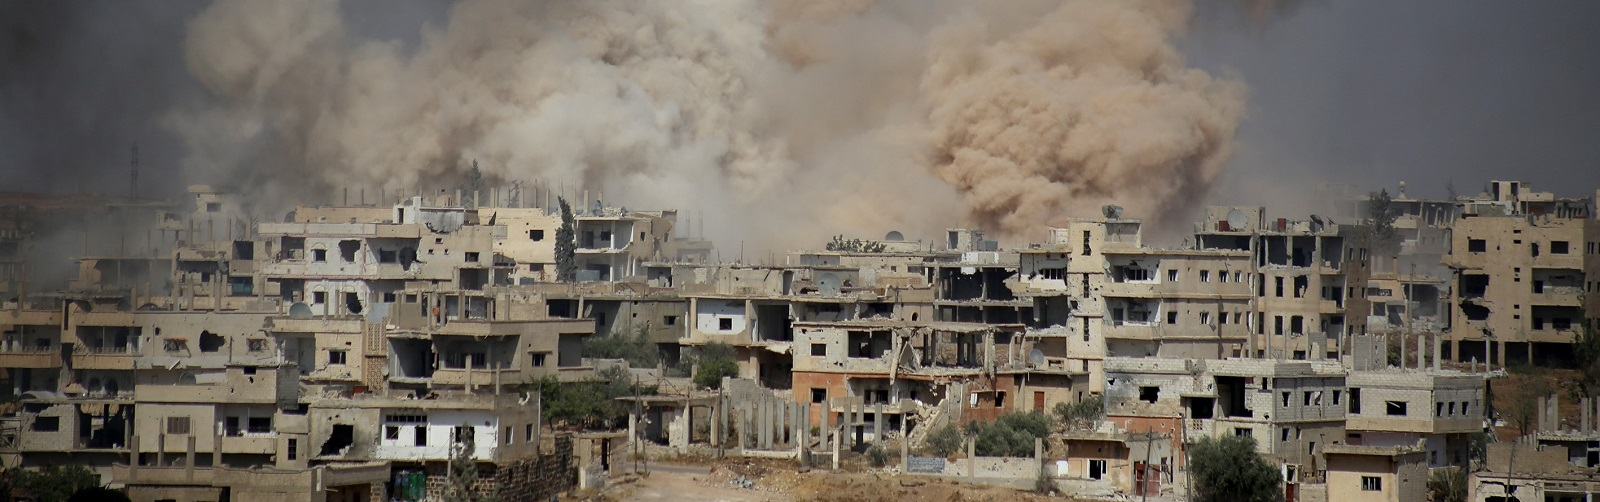 Assad regime hits residential areas in the contested city of Daraa, 14 June (Photo: Anadolu Agency/Getty)